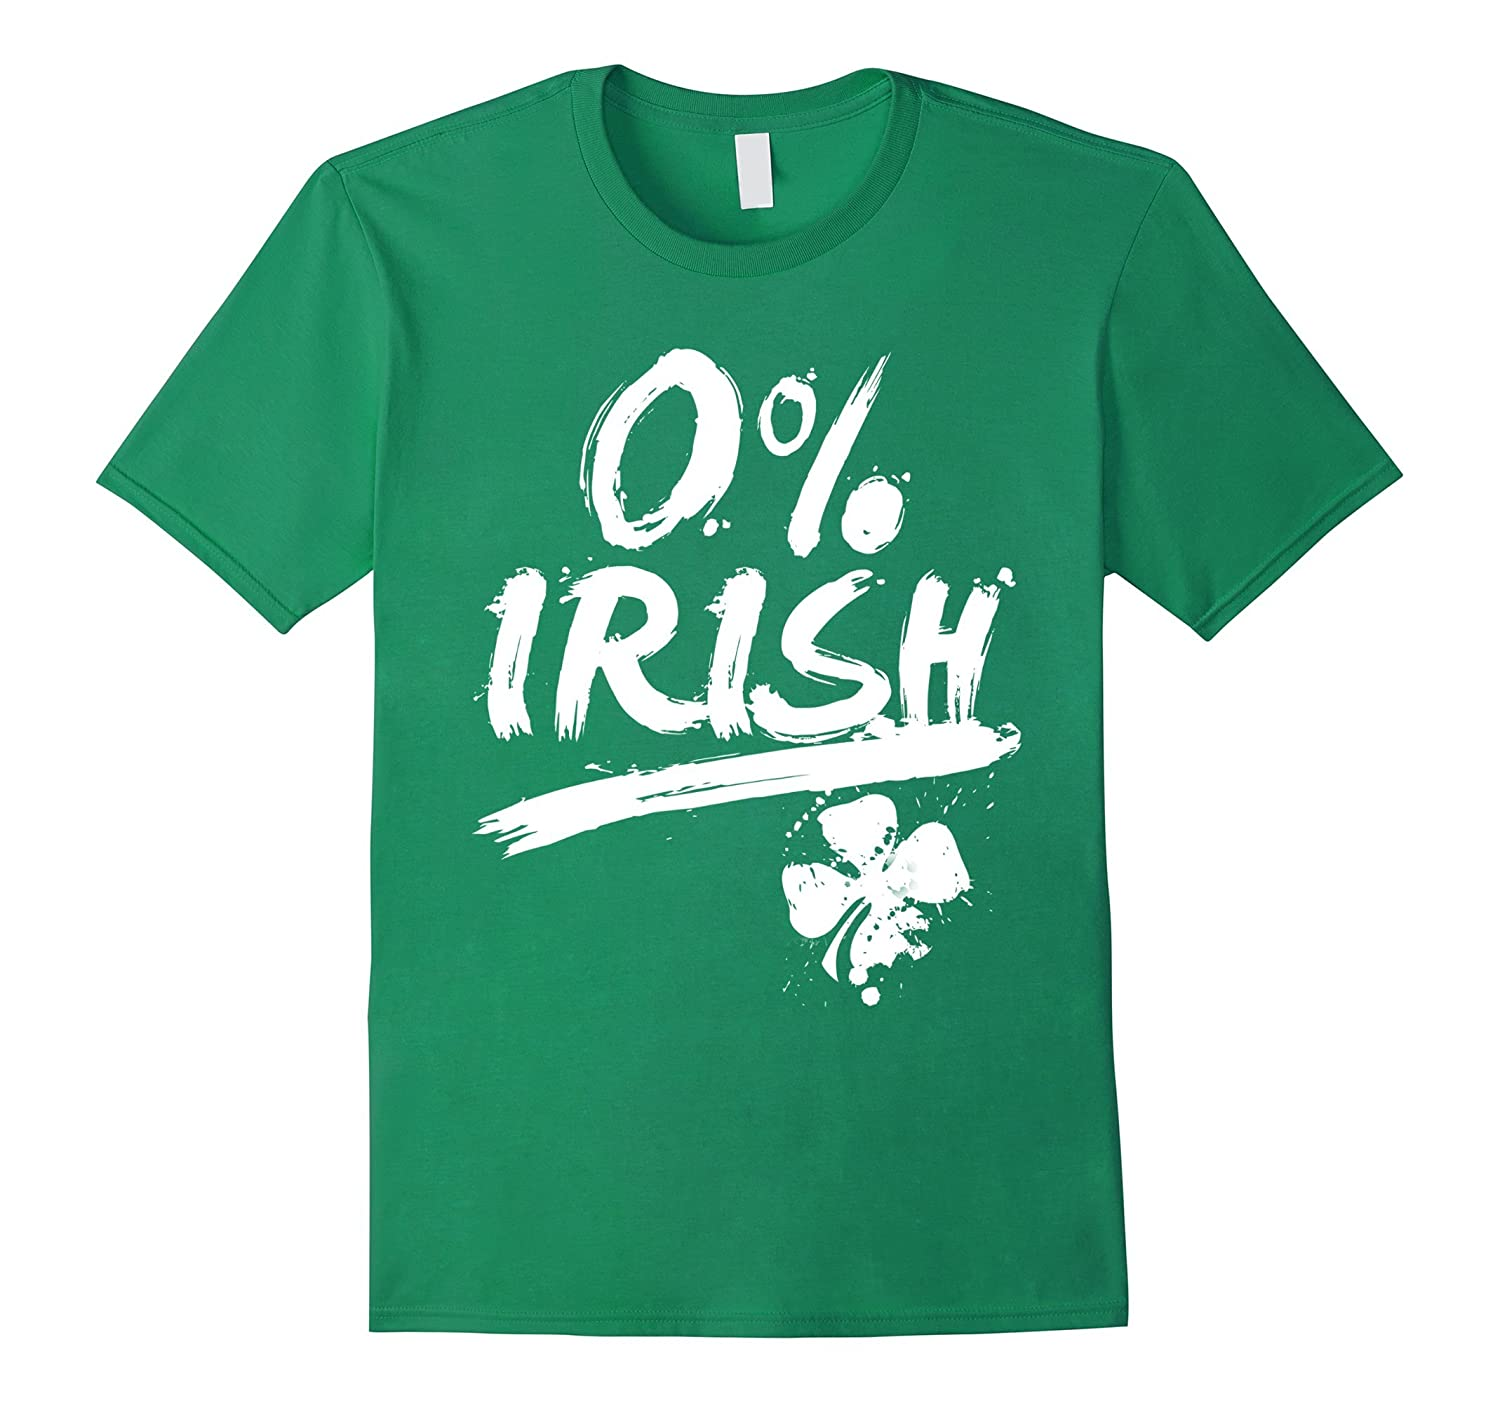 0 Zero Percent Irish - Funny St Patricks Day Party T-Shirt-TD